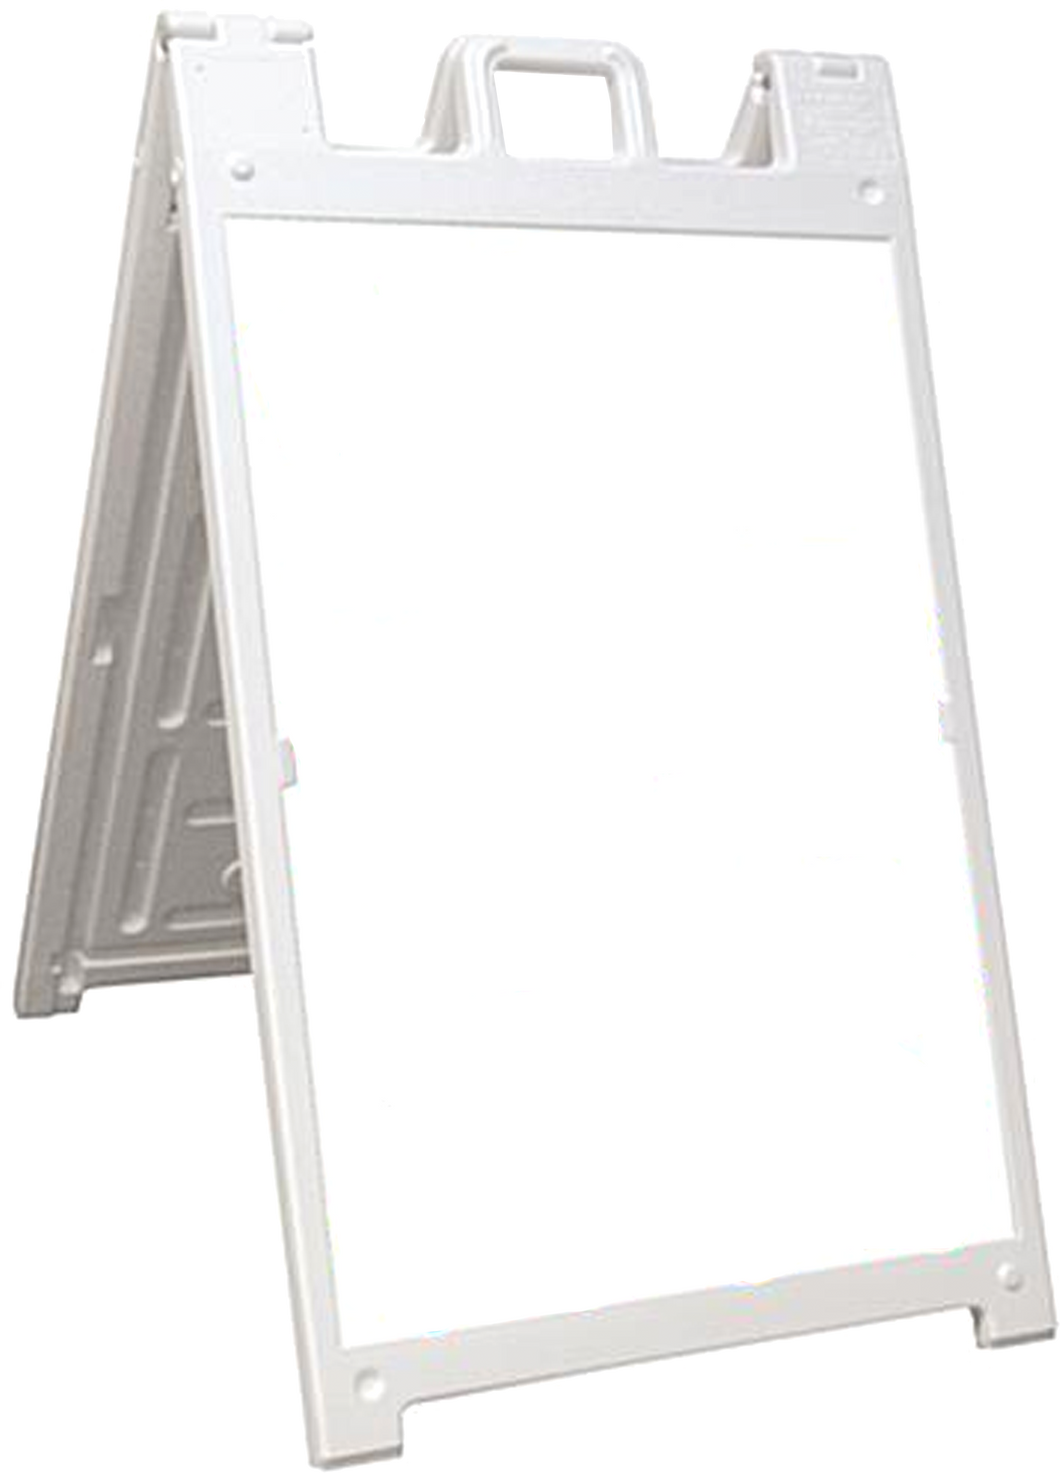 Two-Sided Sandwich Board Sign with Removable panels.